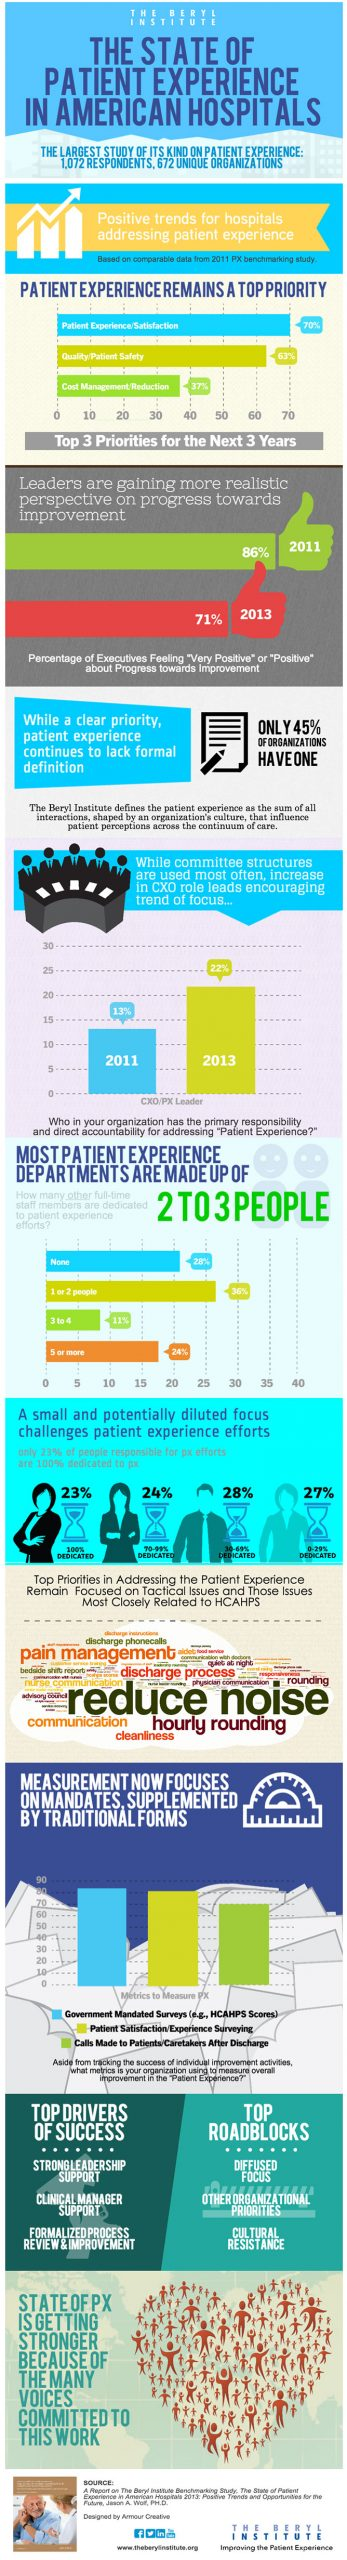 """What are Hospitals Doing to """"Improve the Patient Experience""""? [infographic]"""